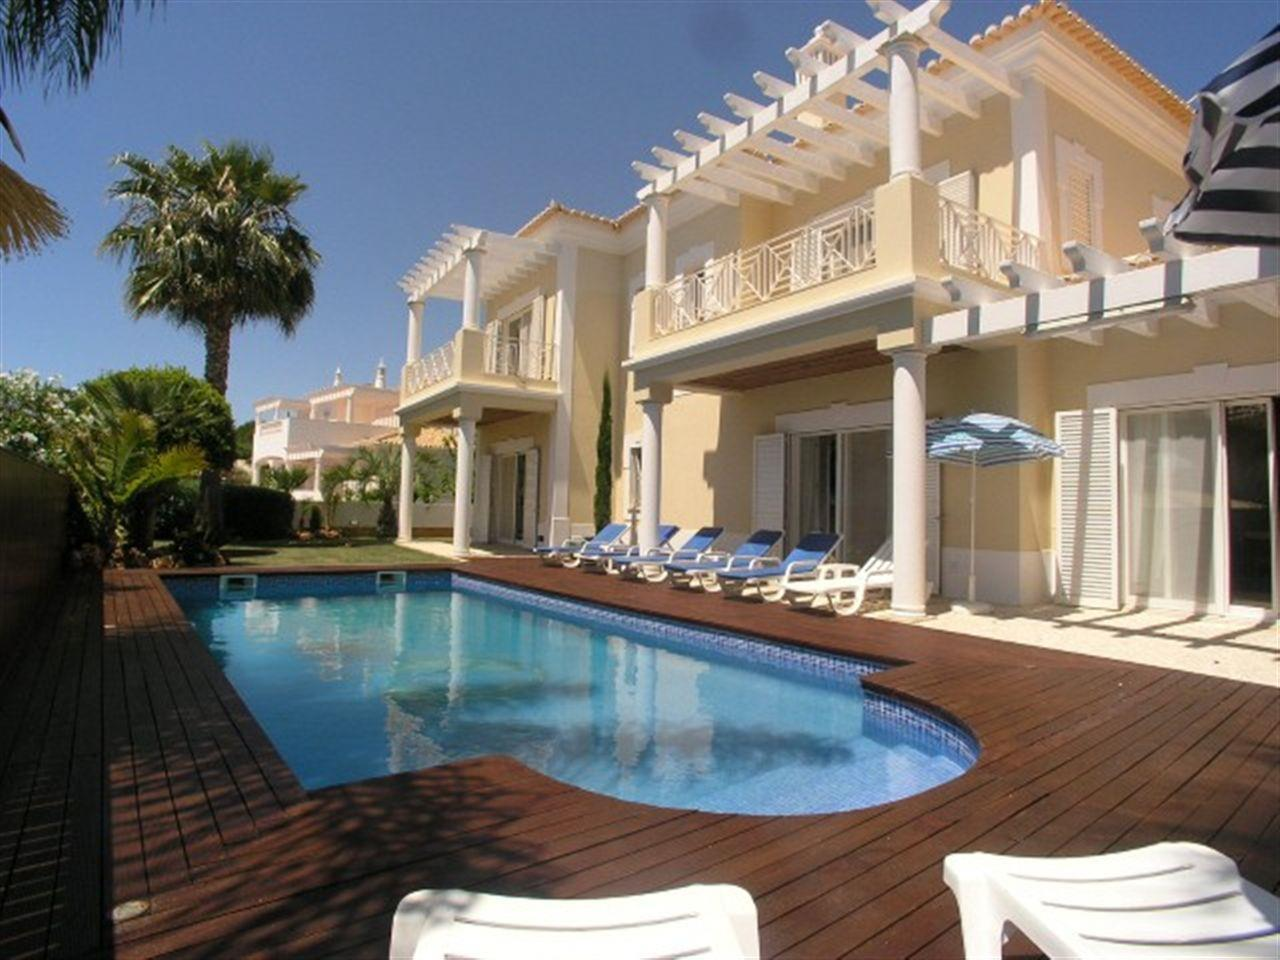 Single Family Home for Sale at Detached house, 4 bedrooms, for Sale Albufeira, Algarve Portugal